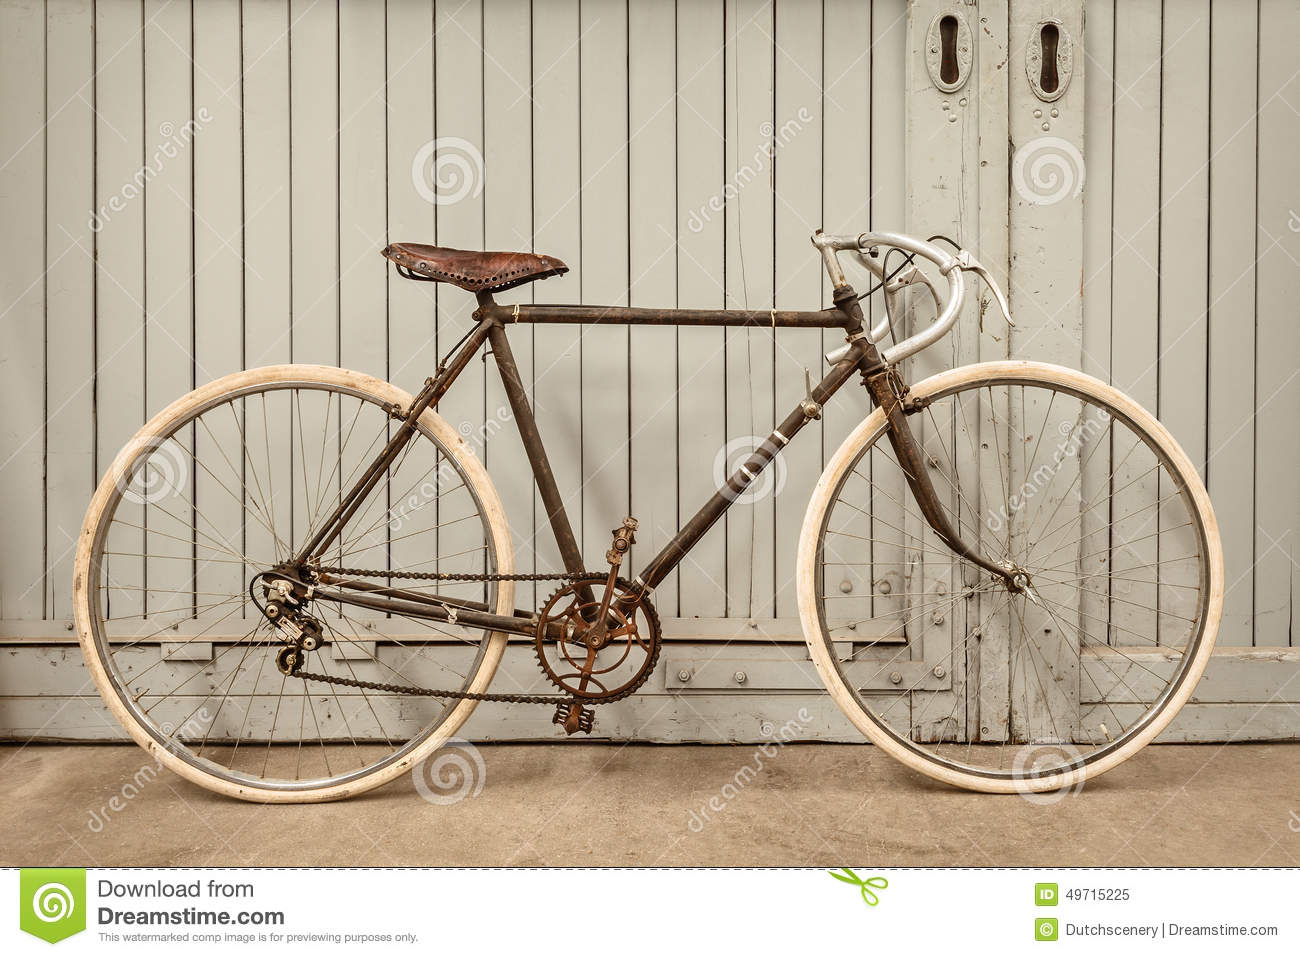 320 Cycle Racing Retro Vintage Photos Free Royalty Free Stock Photos From Dreamstime